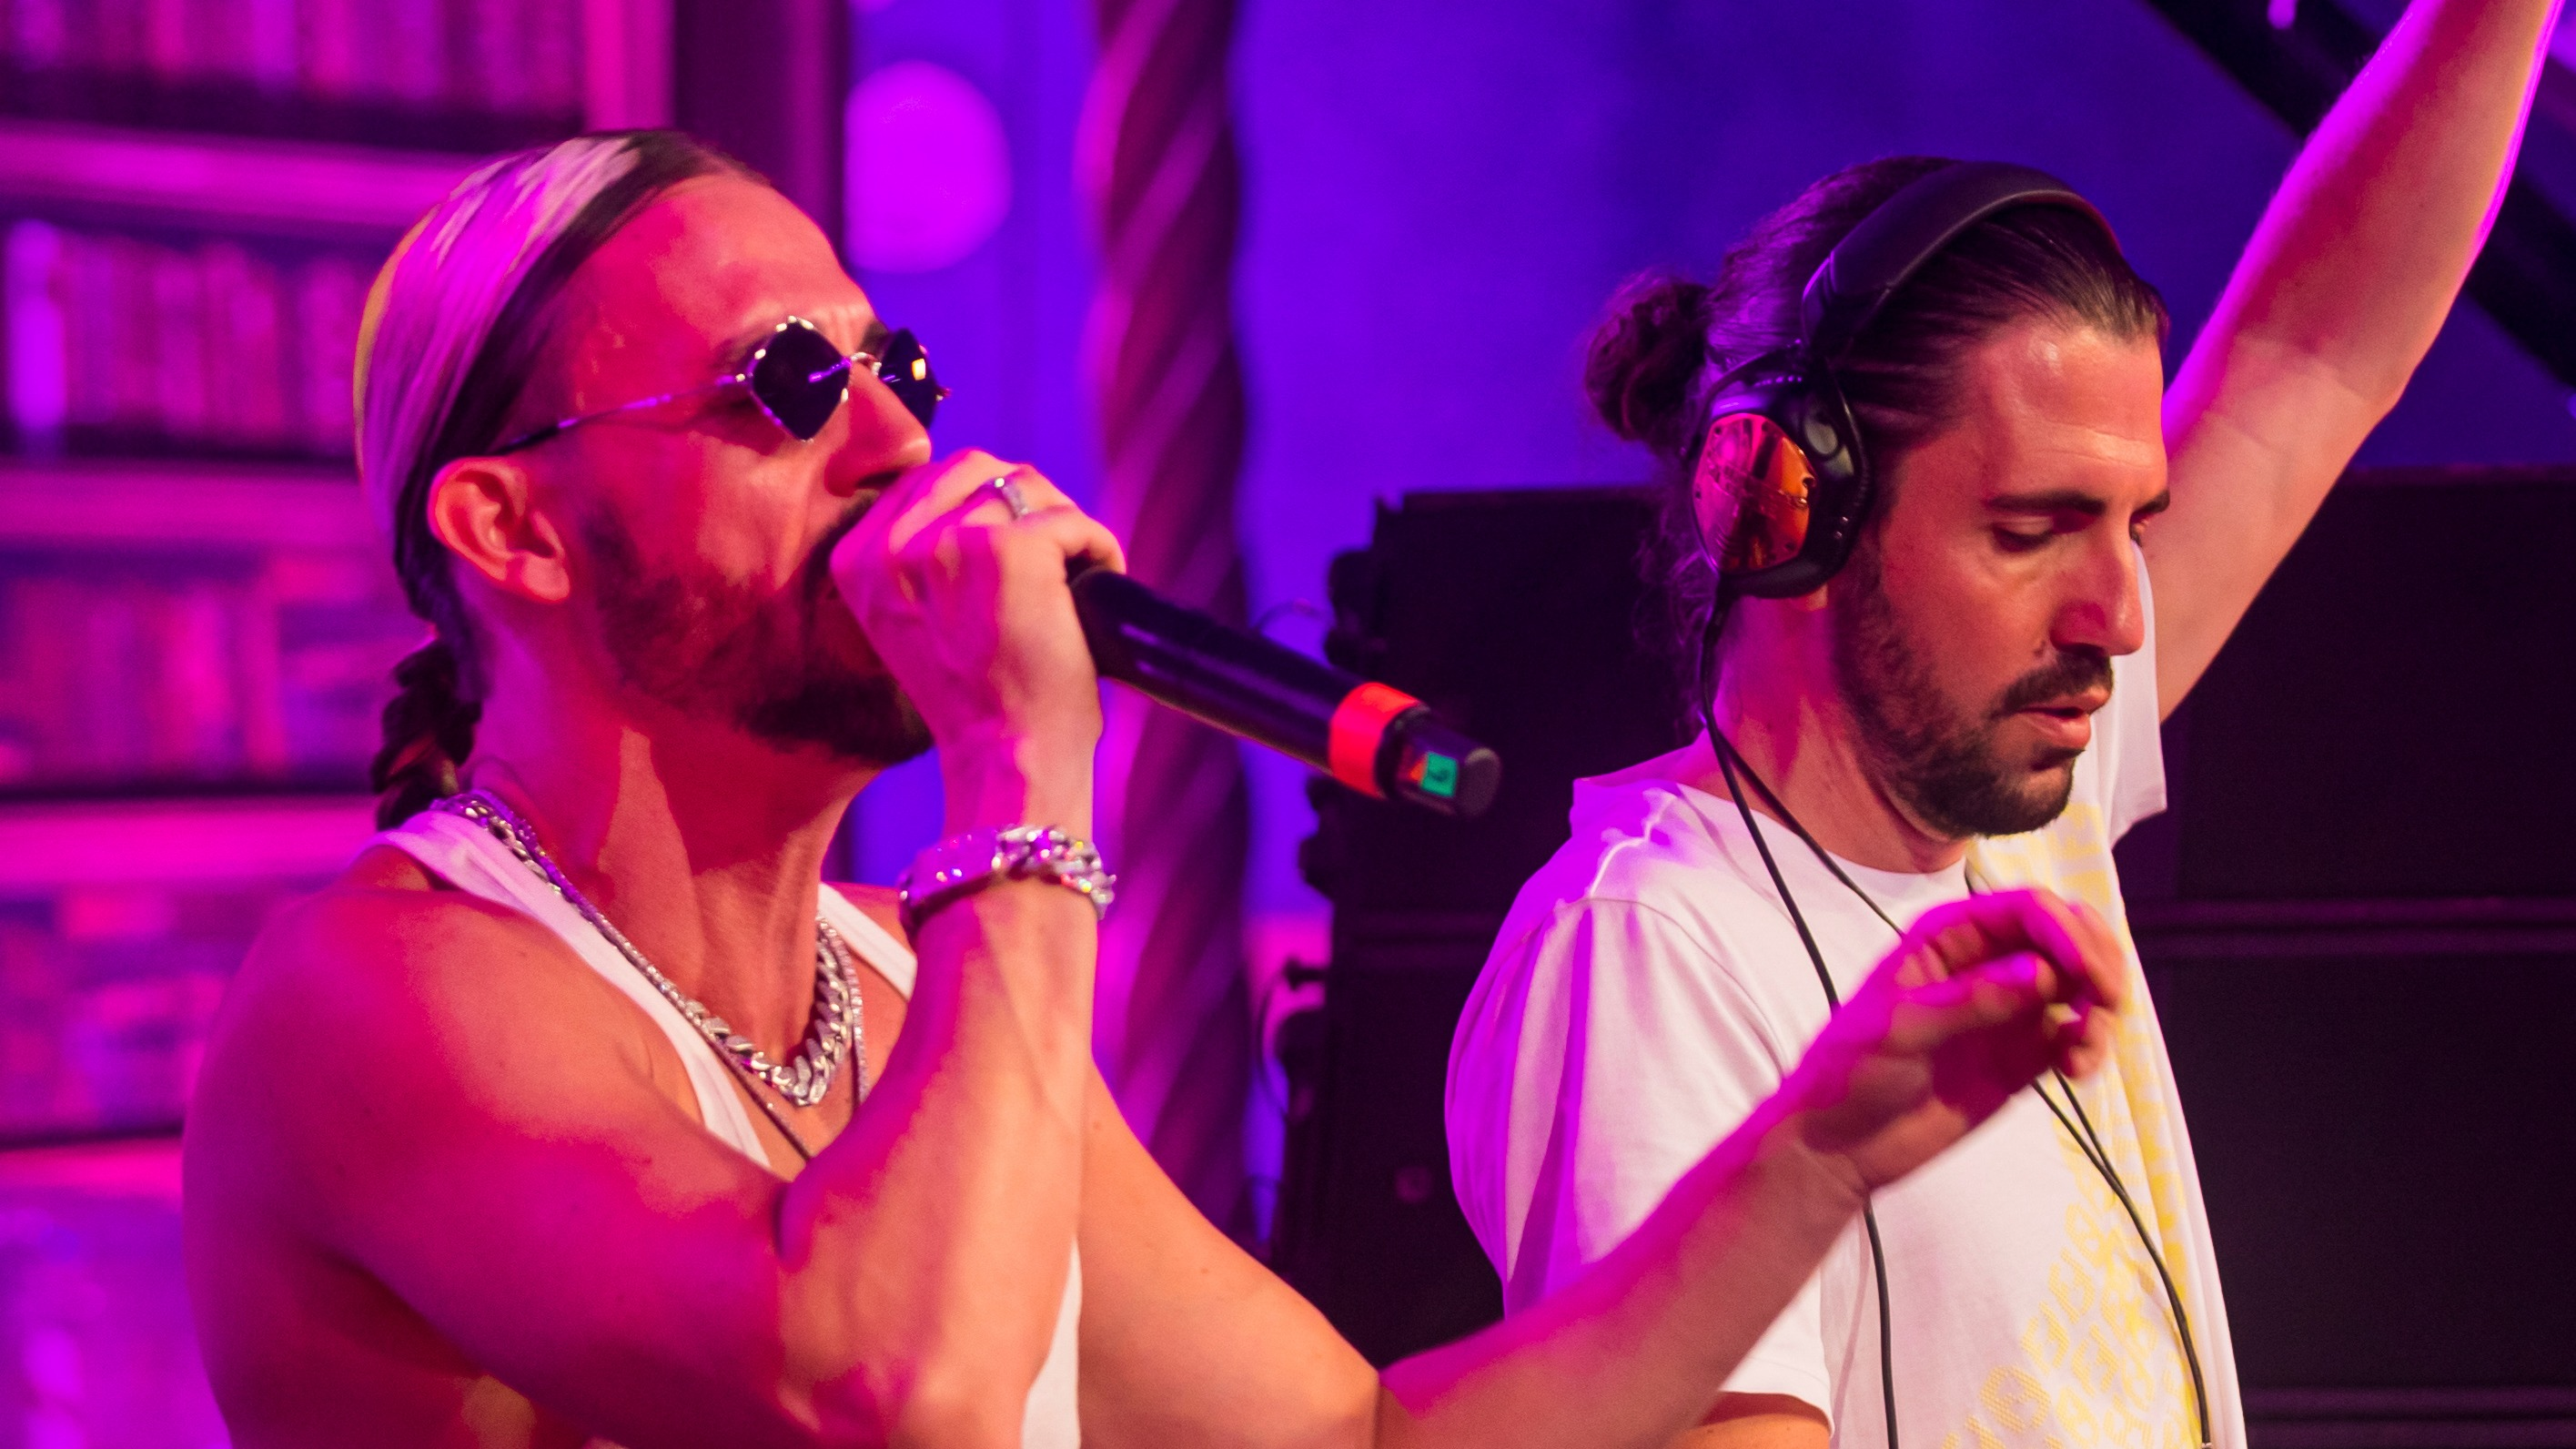 Dimitrivegaslikemike tomorrowland 2019 002